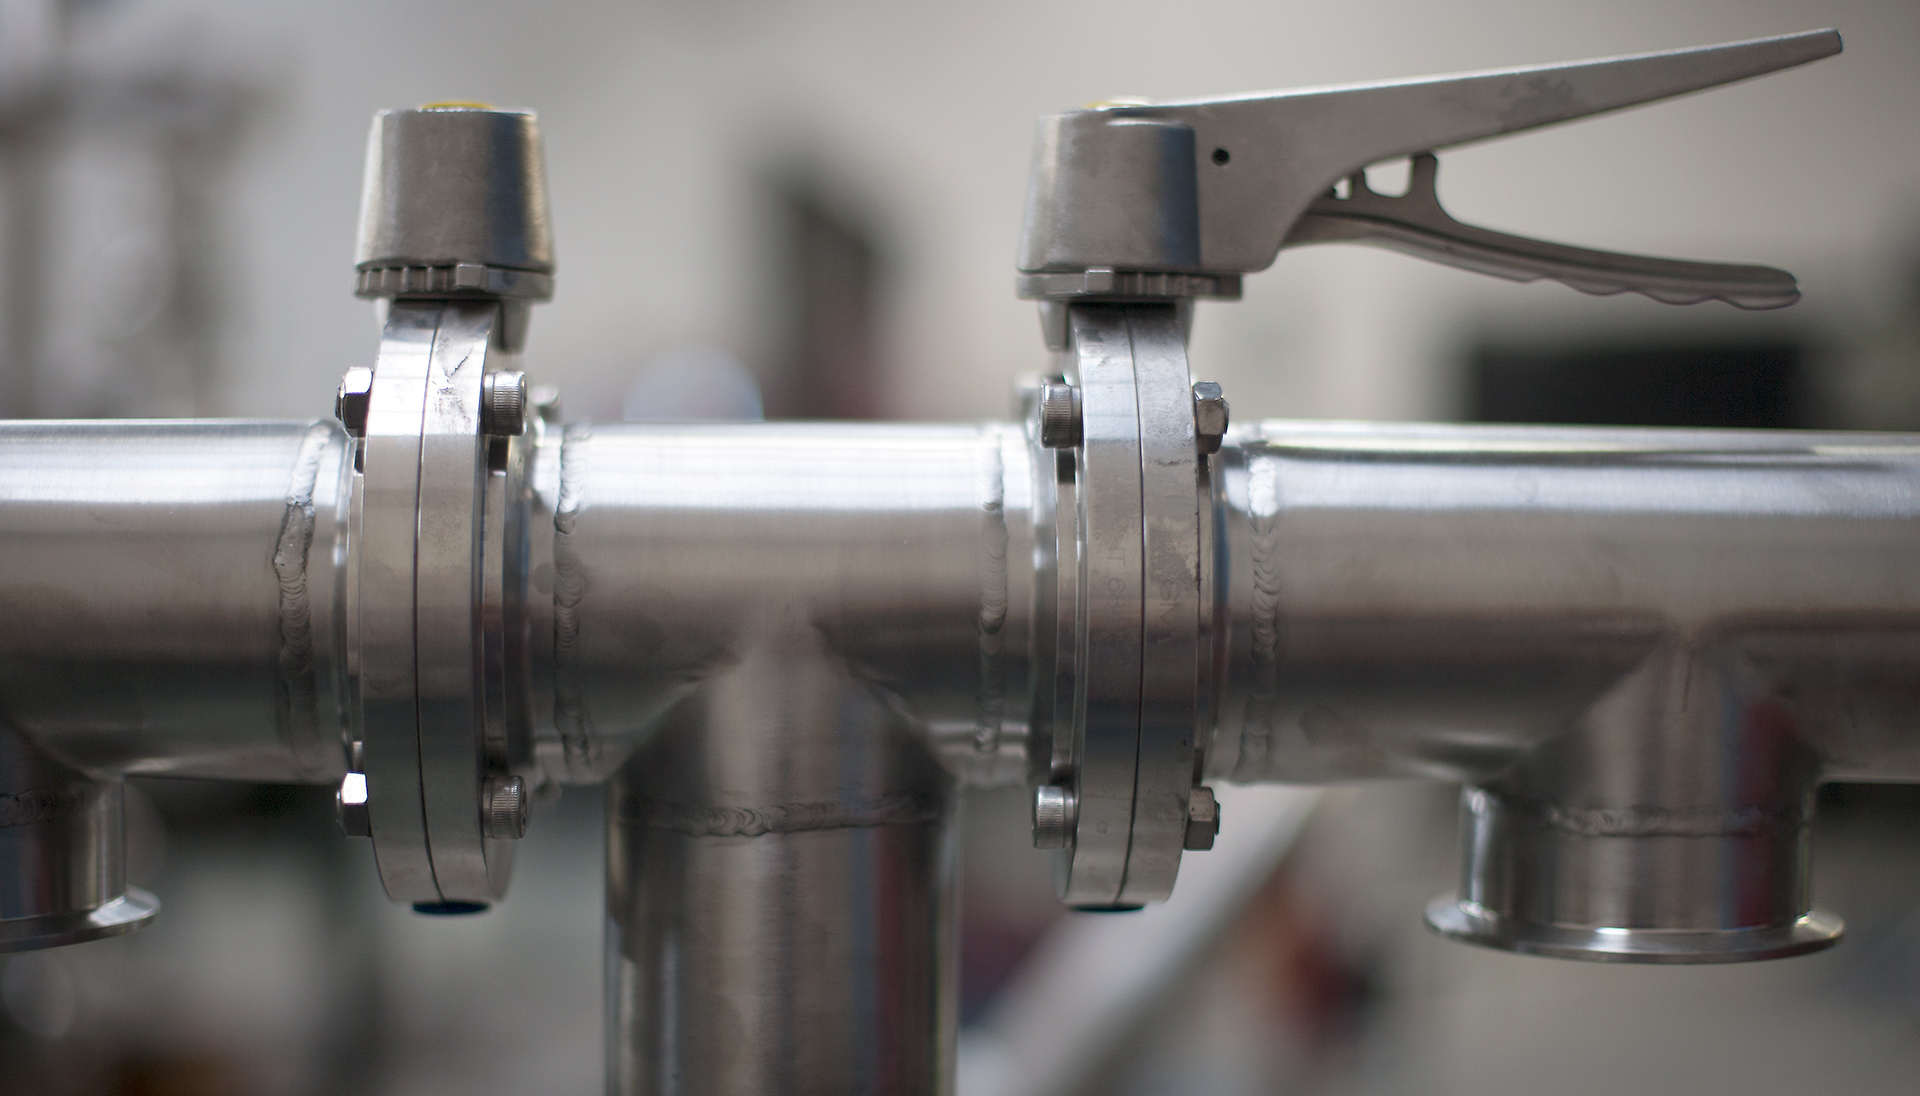 Manufacture and fabricate industrial fittings